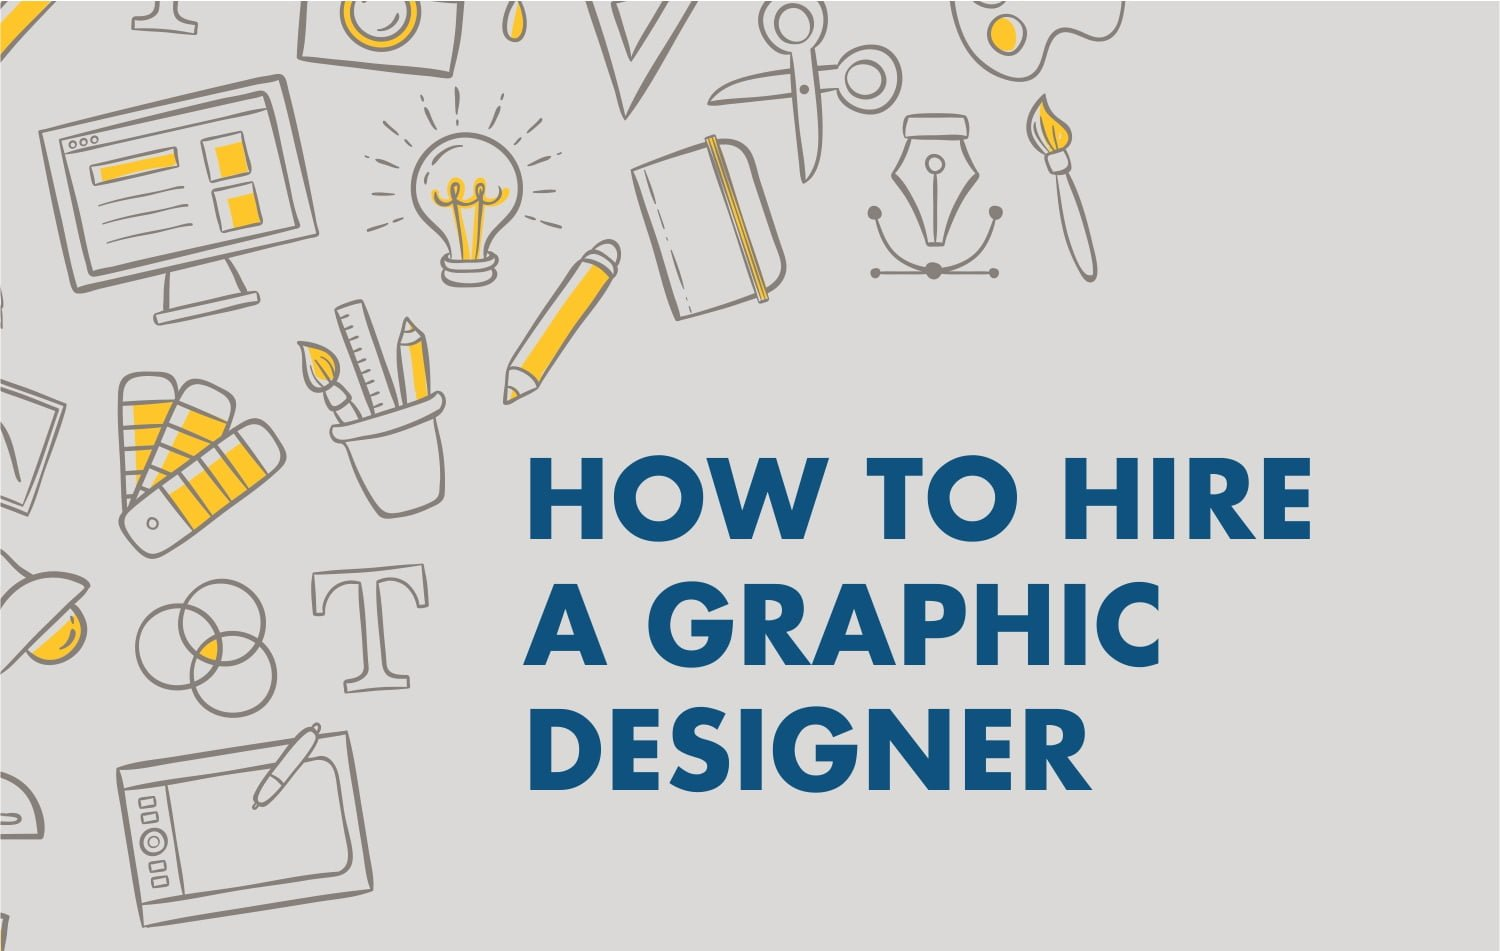 How to hire a graphic designer